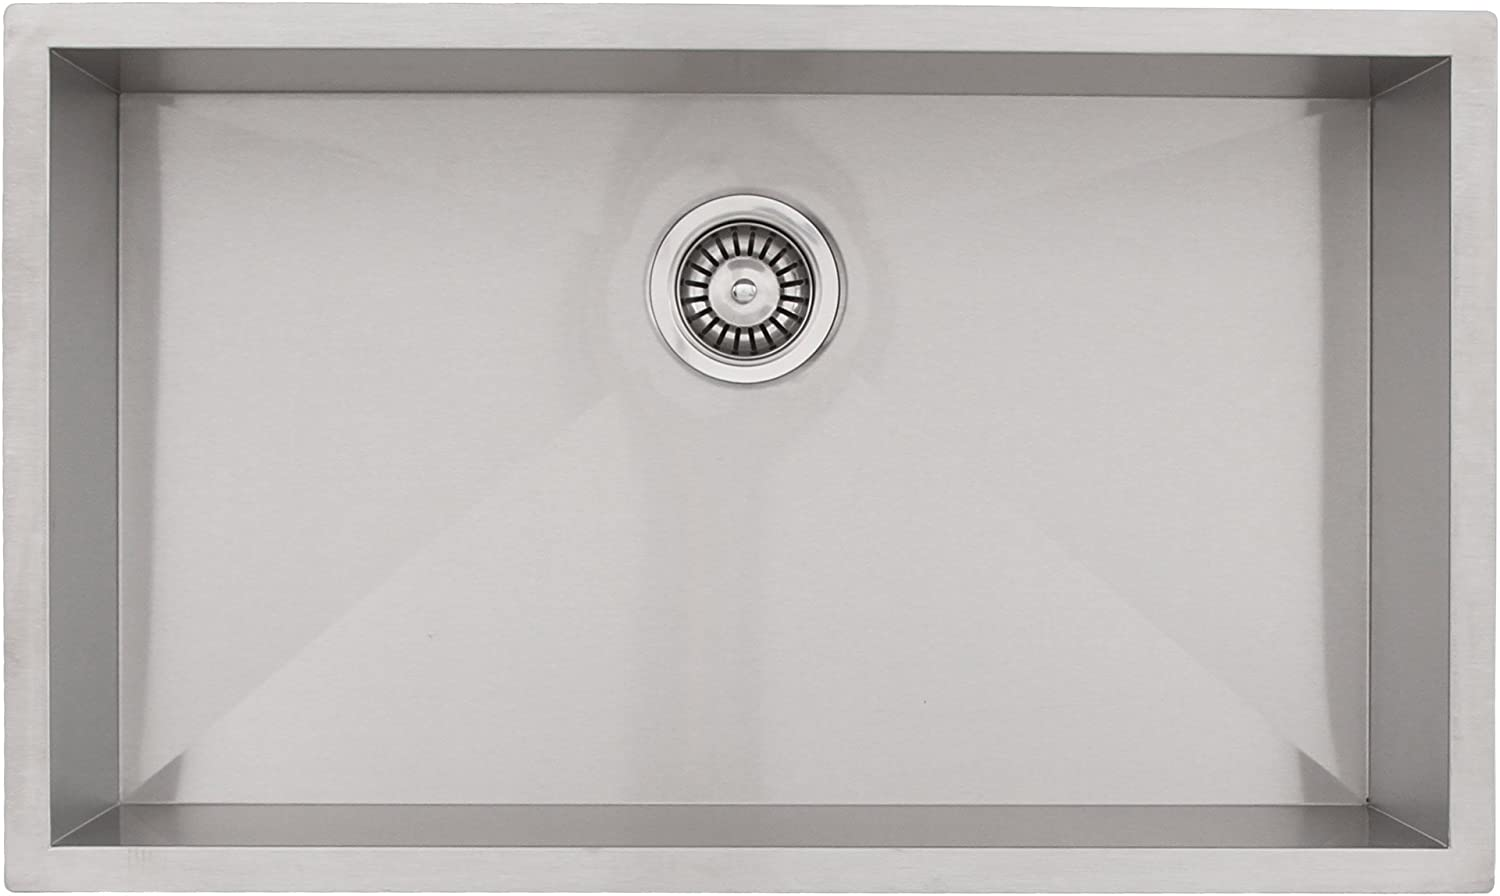 Swanstone US02021SB.011 Solid Surface Undermount Double-Bowl Kitchen Sink, 21-in L X 20.25-in H X 9-in H, Tahiti White